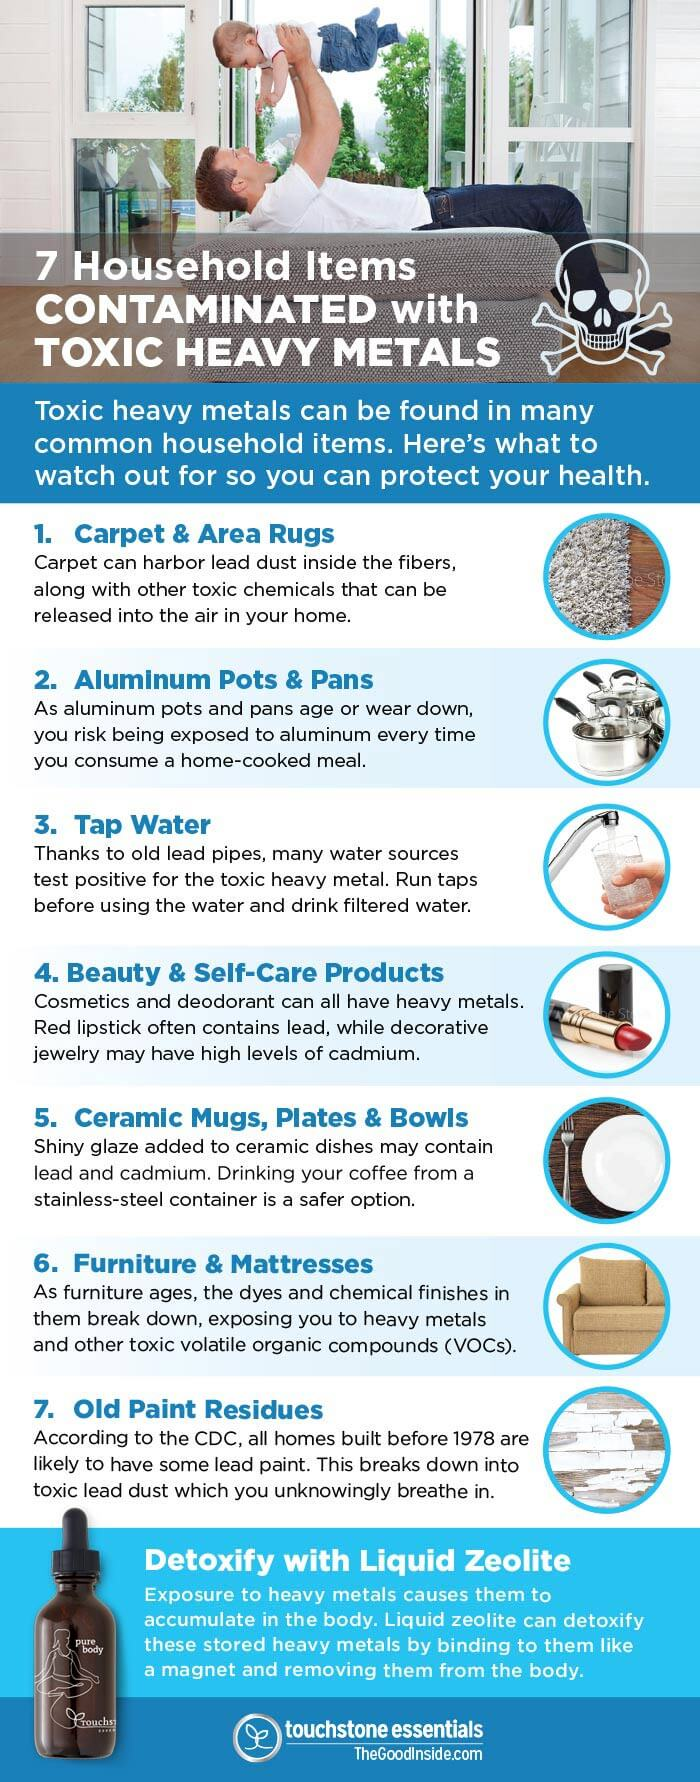 7 Household Items Contaminated with Toxic Heavy Metals